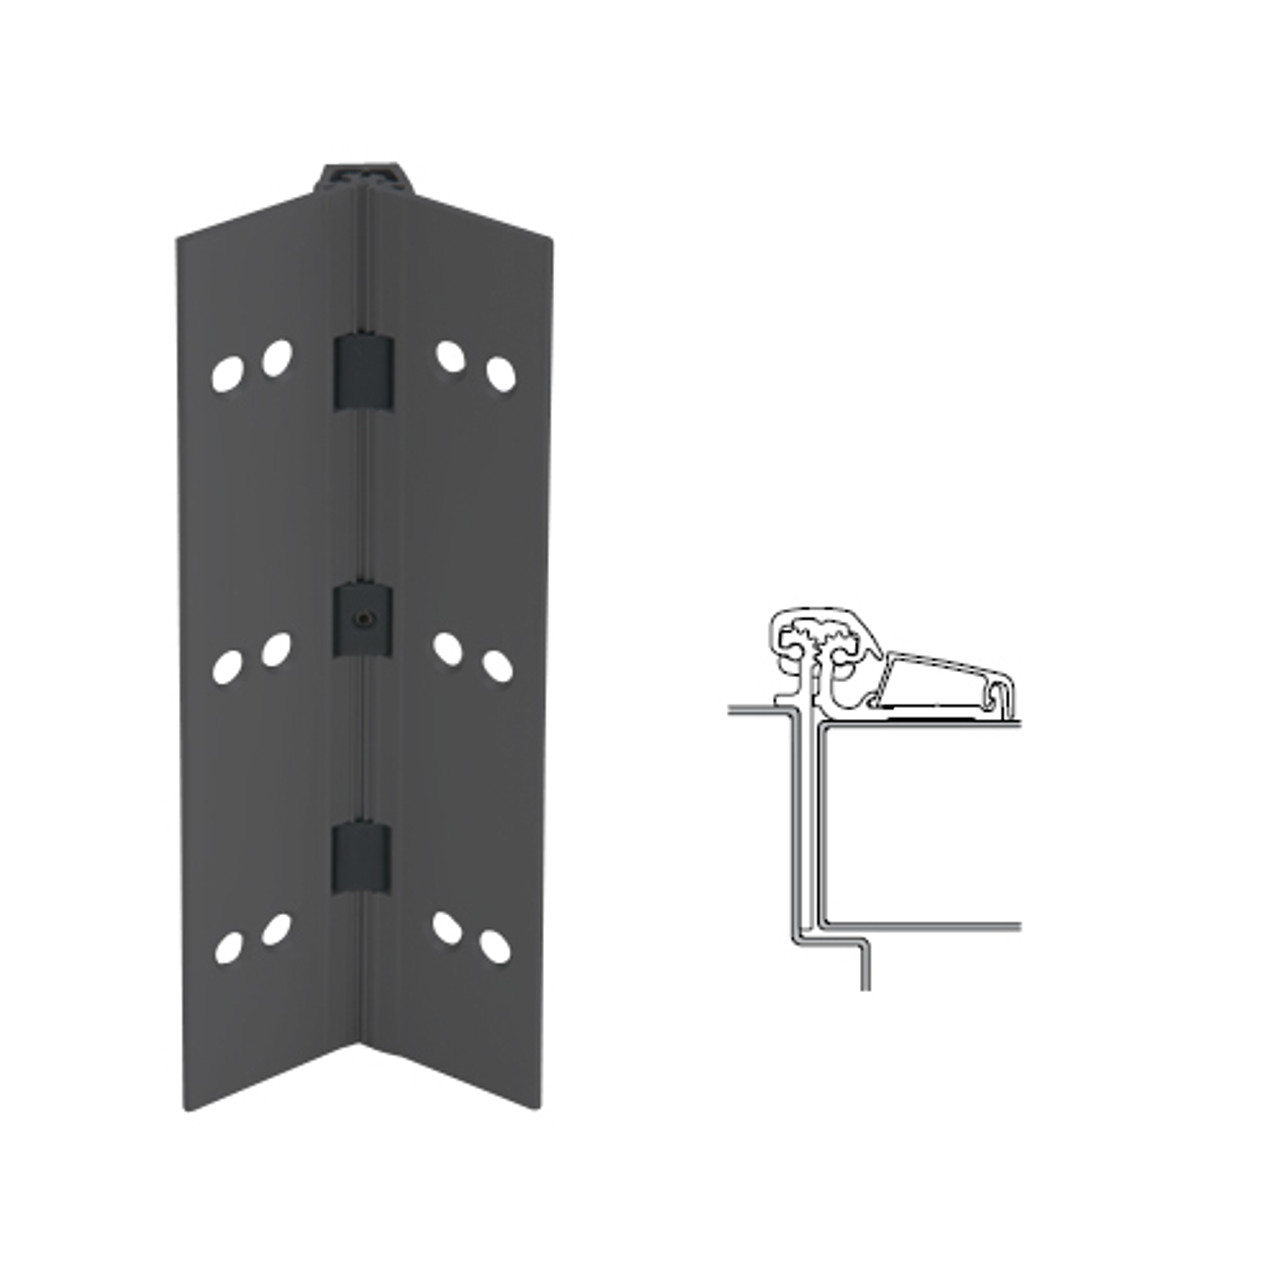 054XY-315AN-85-SECWDWD IVES Adjustable Half Surface Continuous Geared Hinges with Security Screws - Hex Pin Drive in Anodized Black